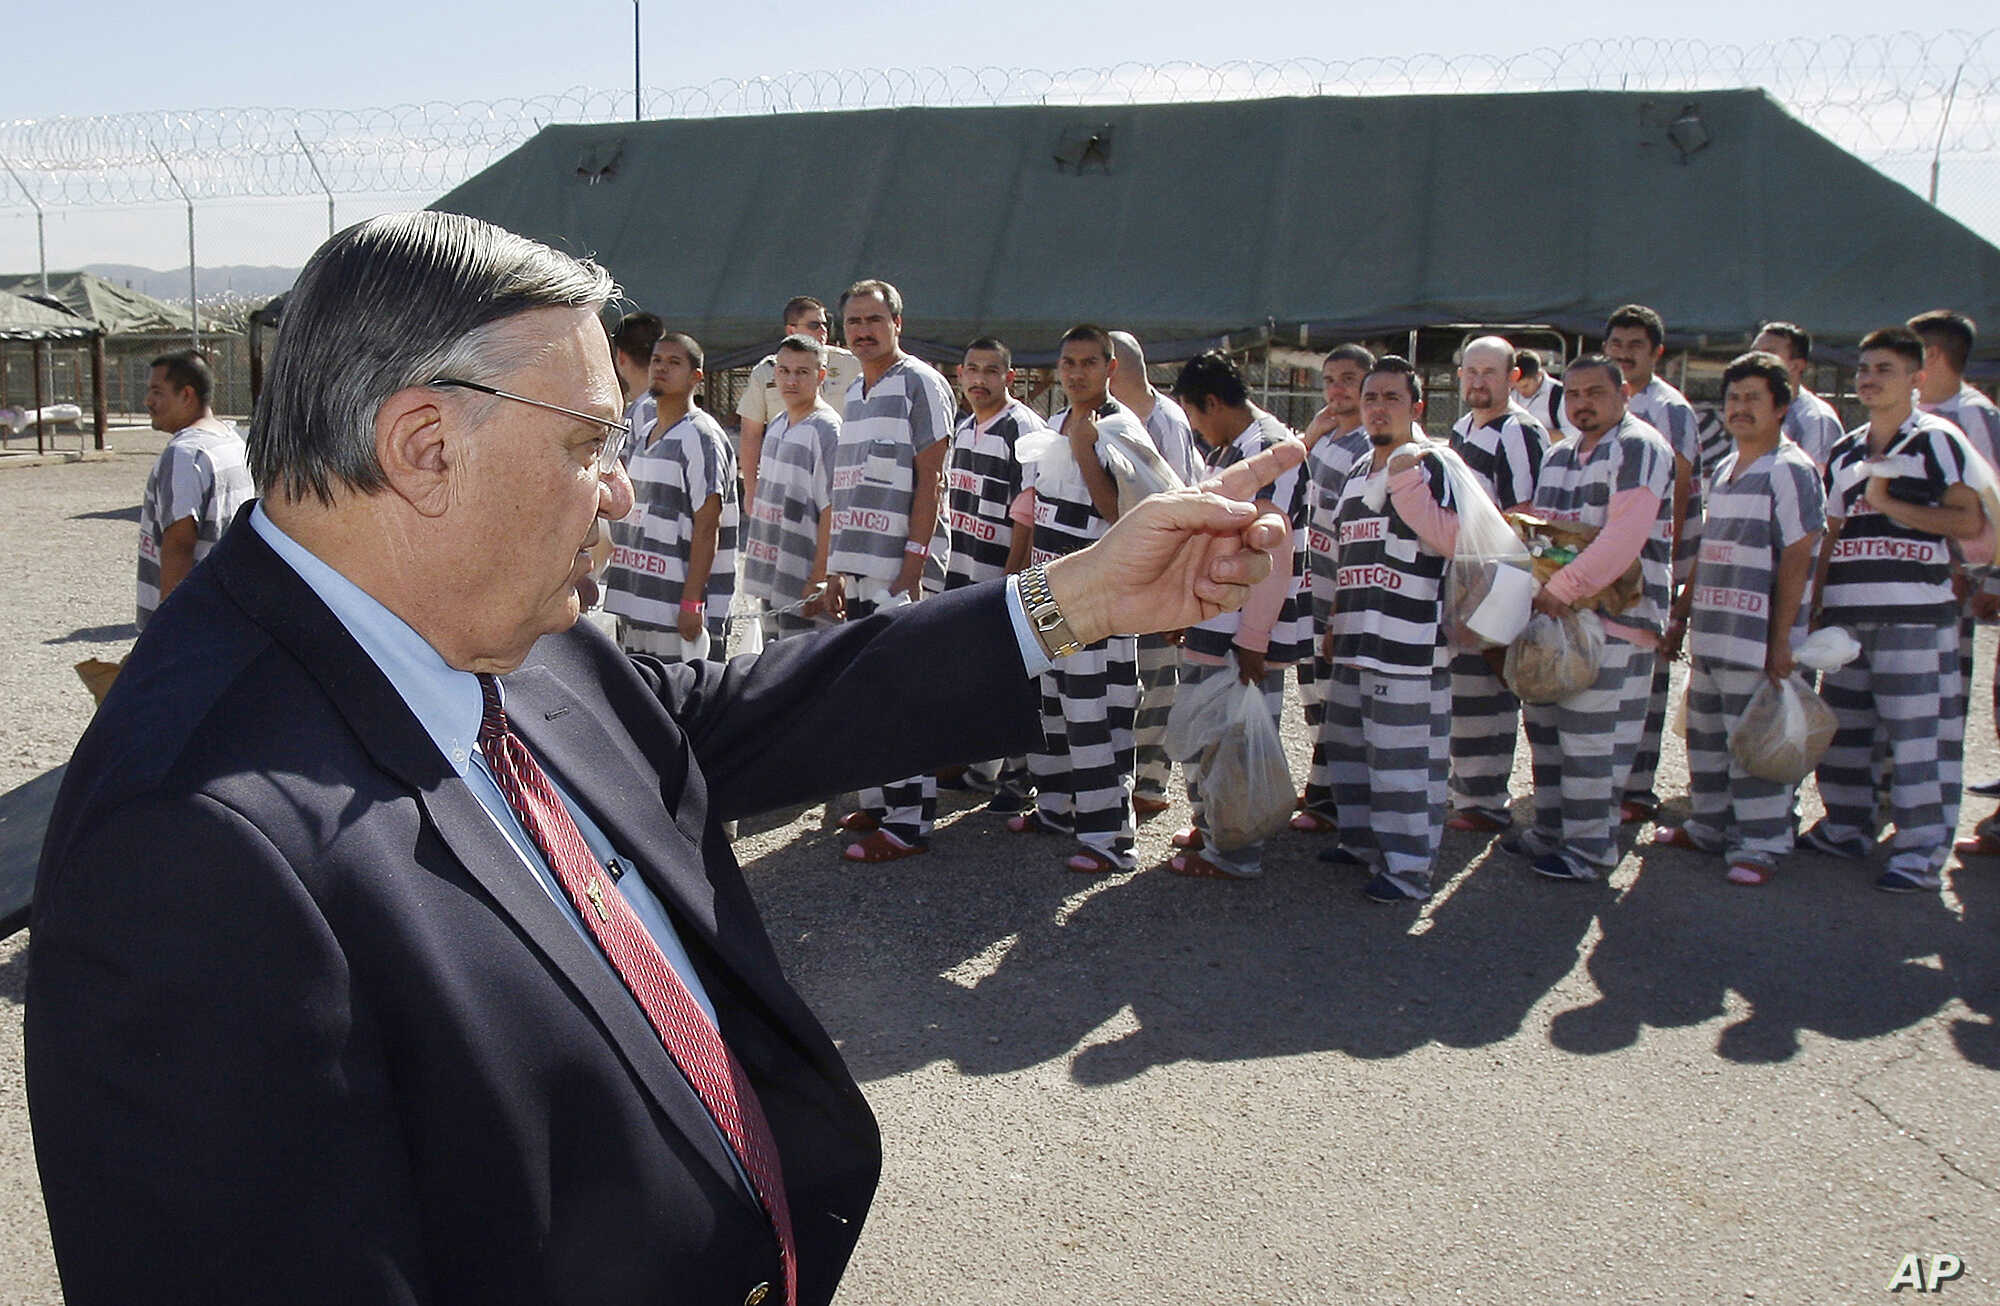 FILE - In this Feb. 4, 2009, file photo, Maricopa County Sheriff Joe Arpaio, left, orders approximately 200 convicted illegal immigrants handcuffed together and moved into a separate area of Tent City, for incarceration until their sentences are serv...